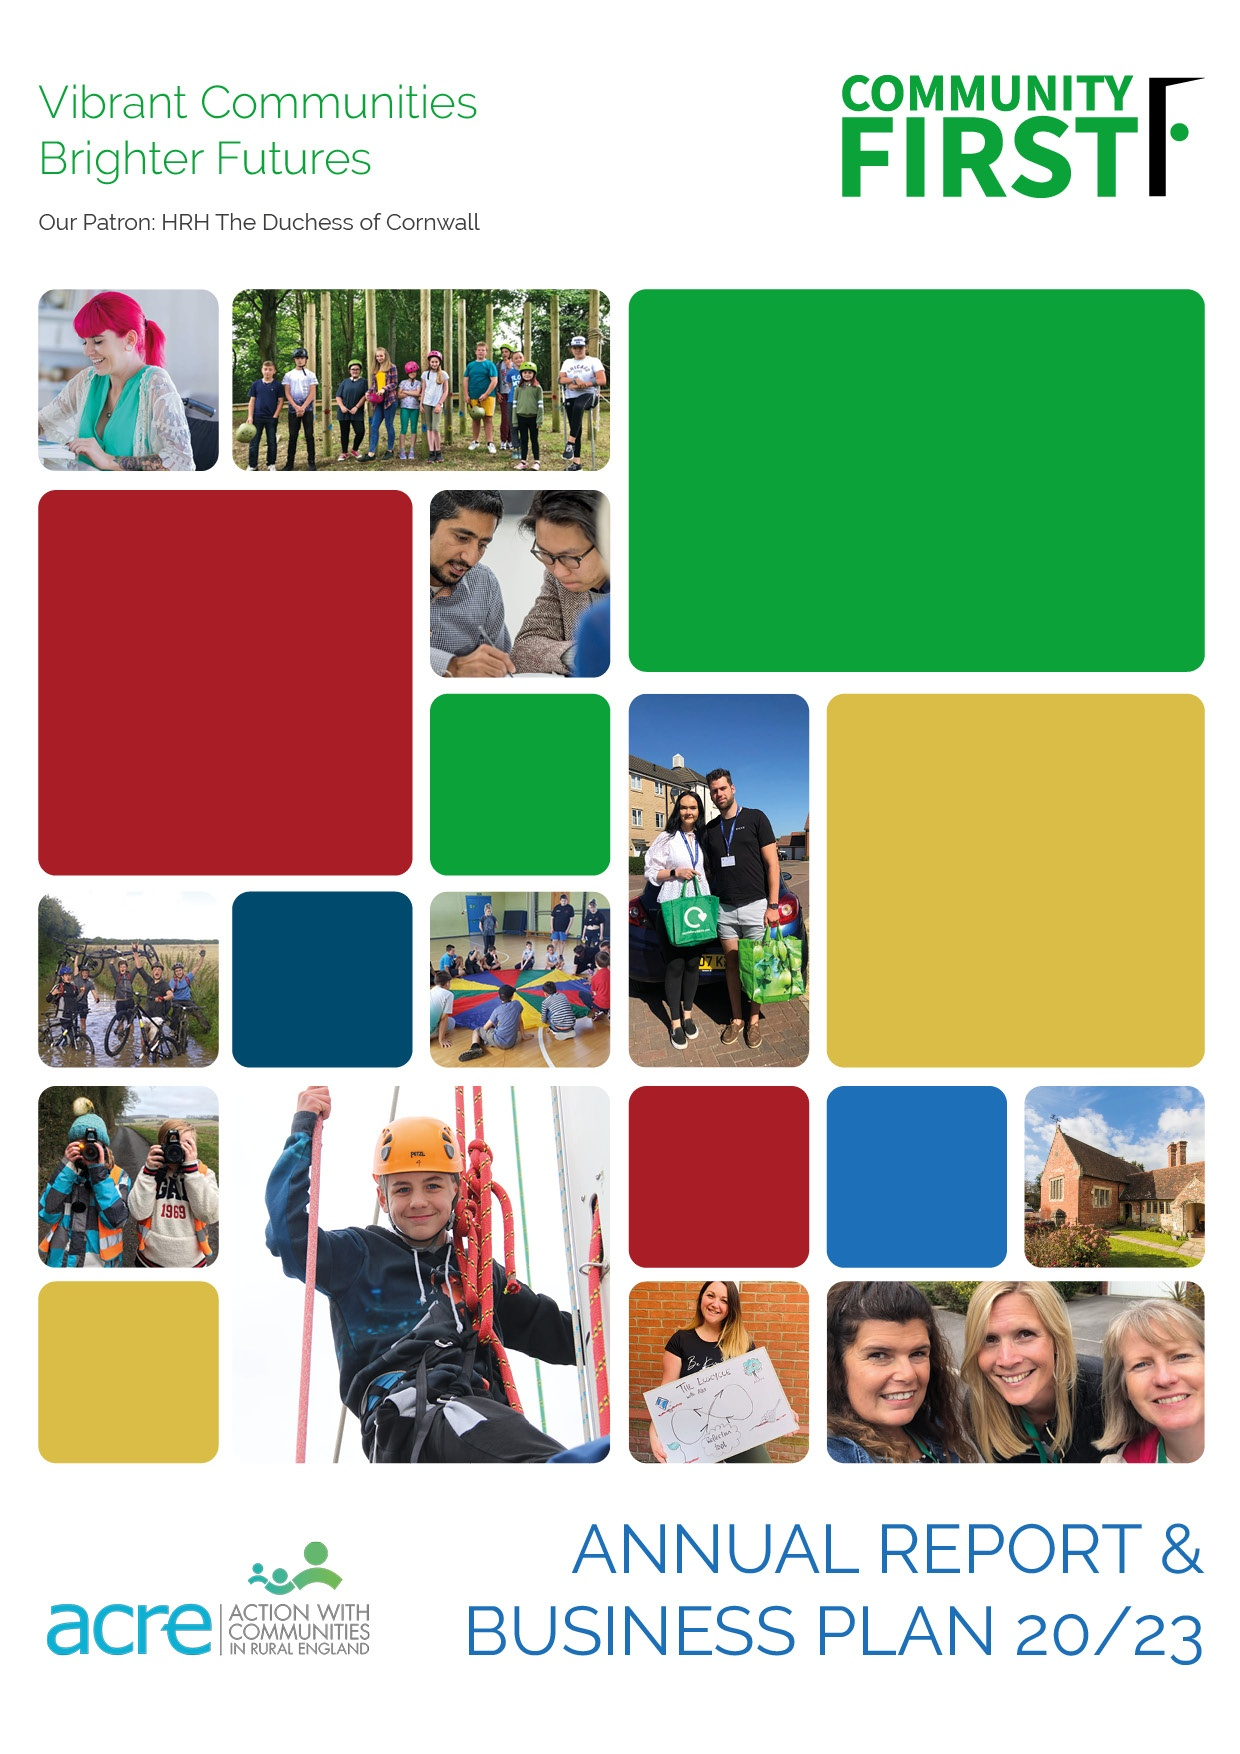 Community first annual review and business plan cover 2020-2023